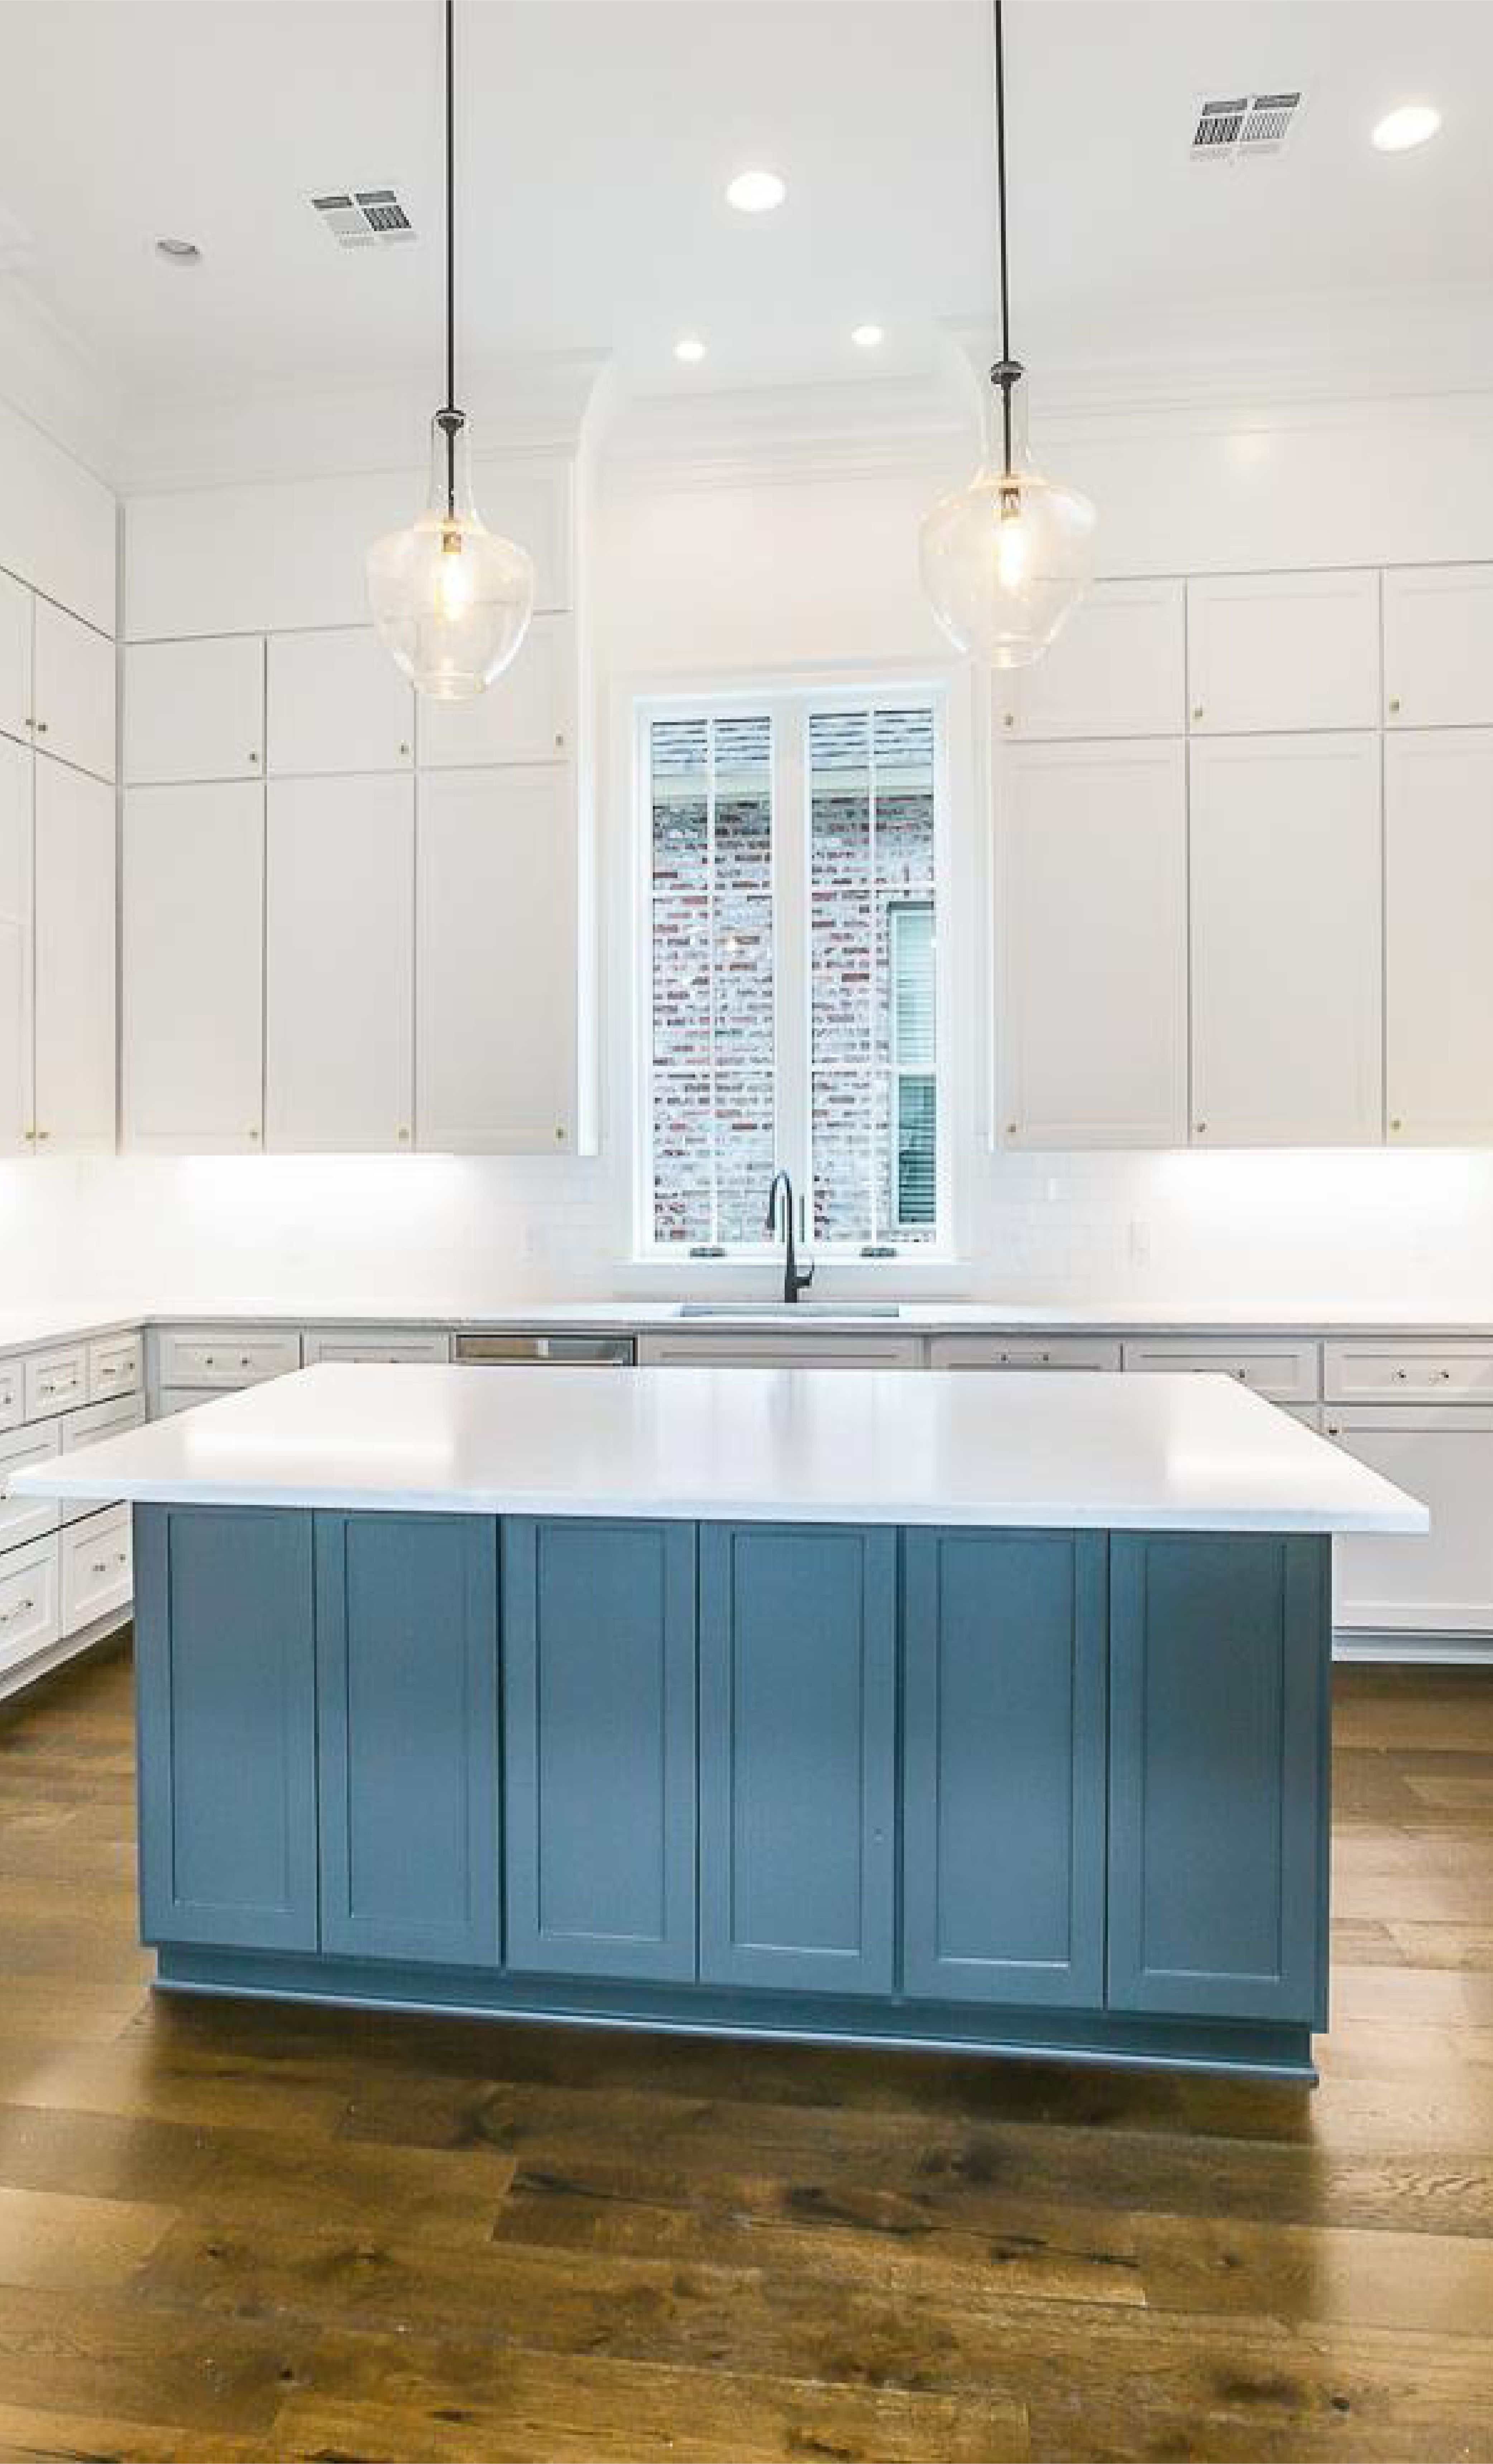 This Baton Rouge La Home Features A Spacious Modern Kitchen With Walls Of Custom Cabinetry In 2020 Modern Kitchen Home Kitchen